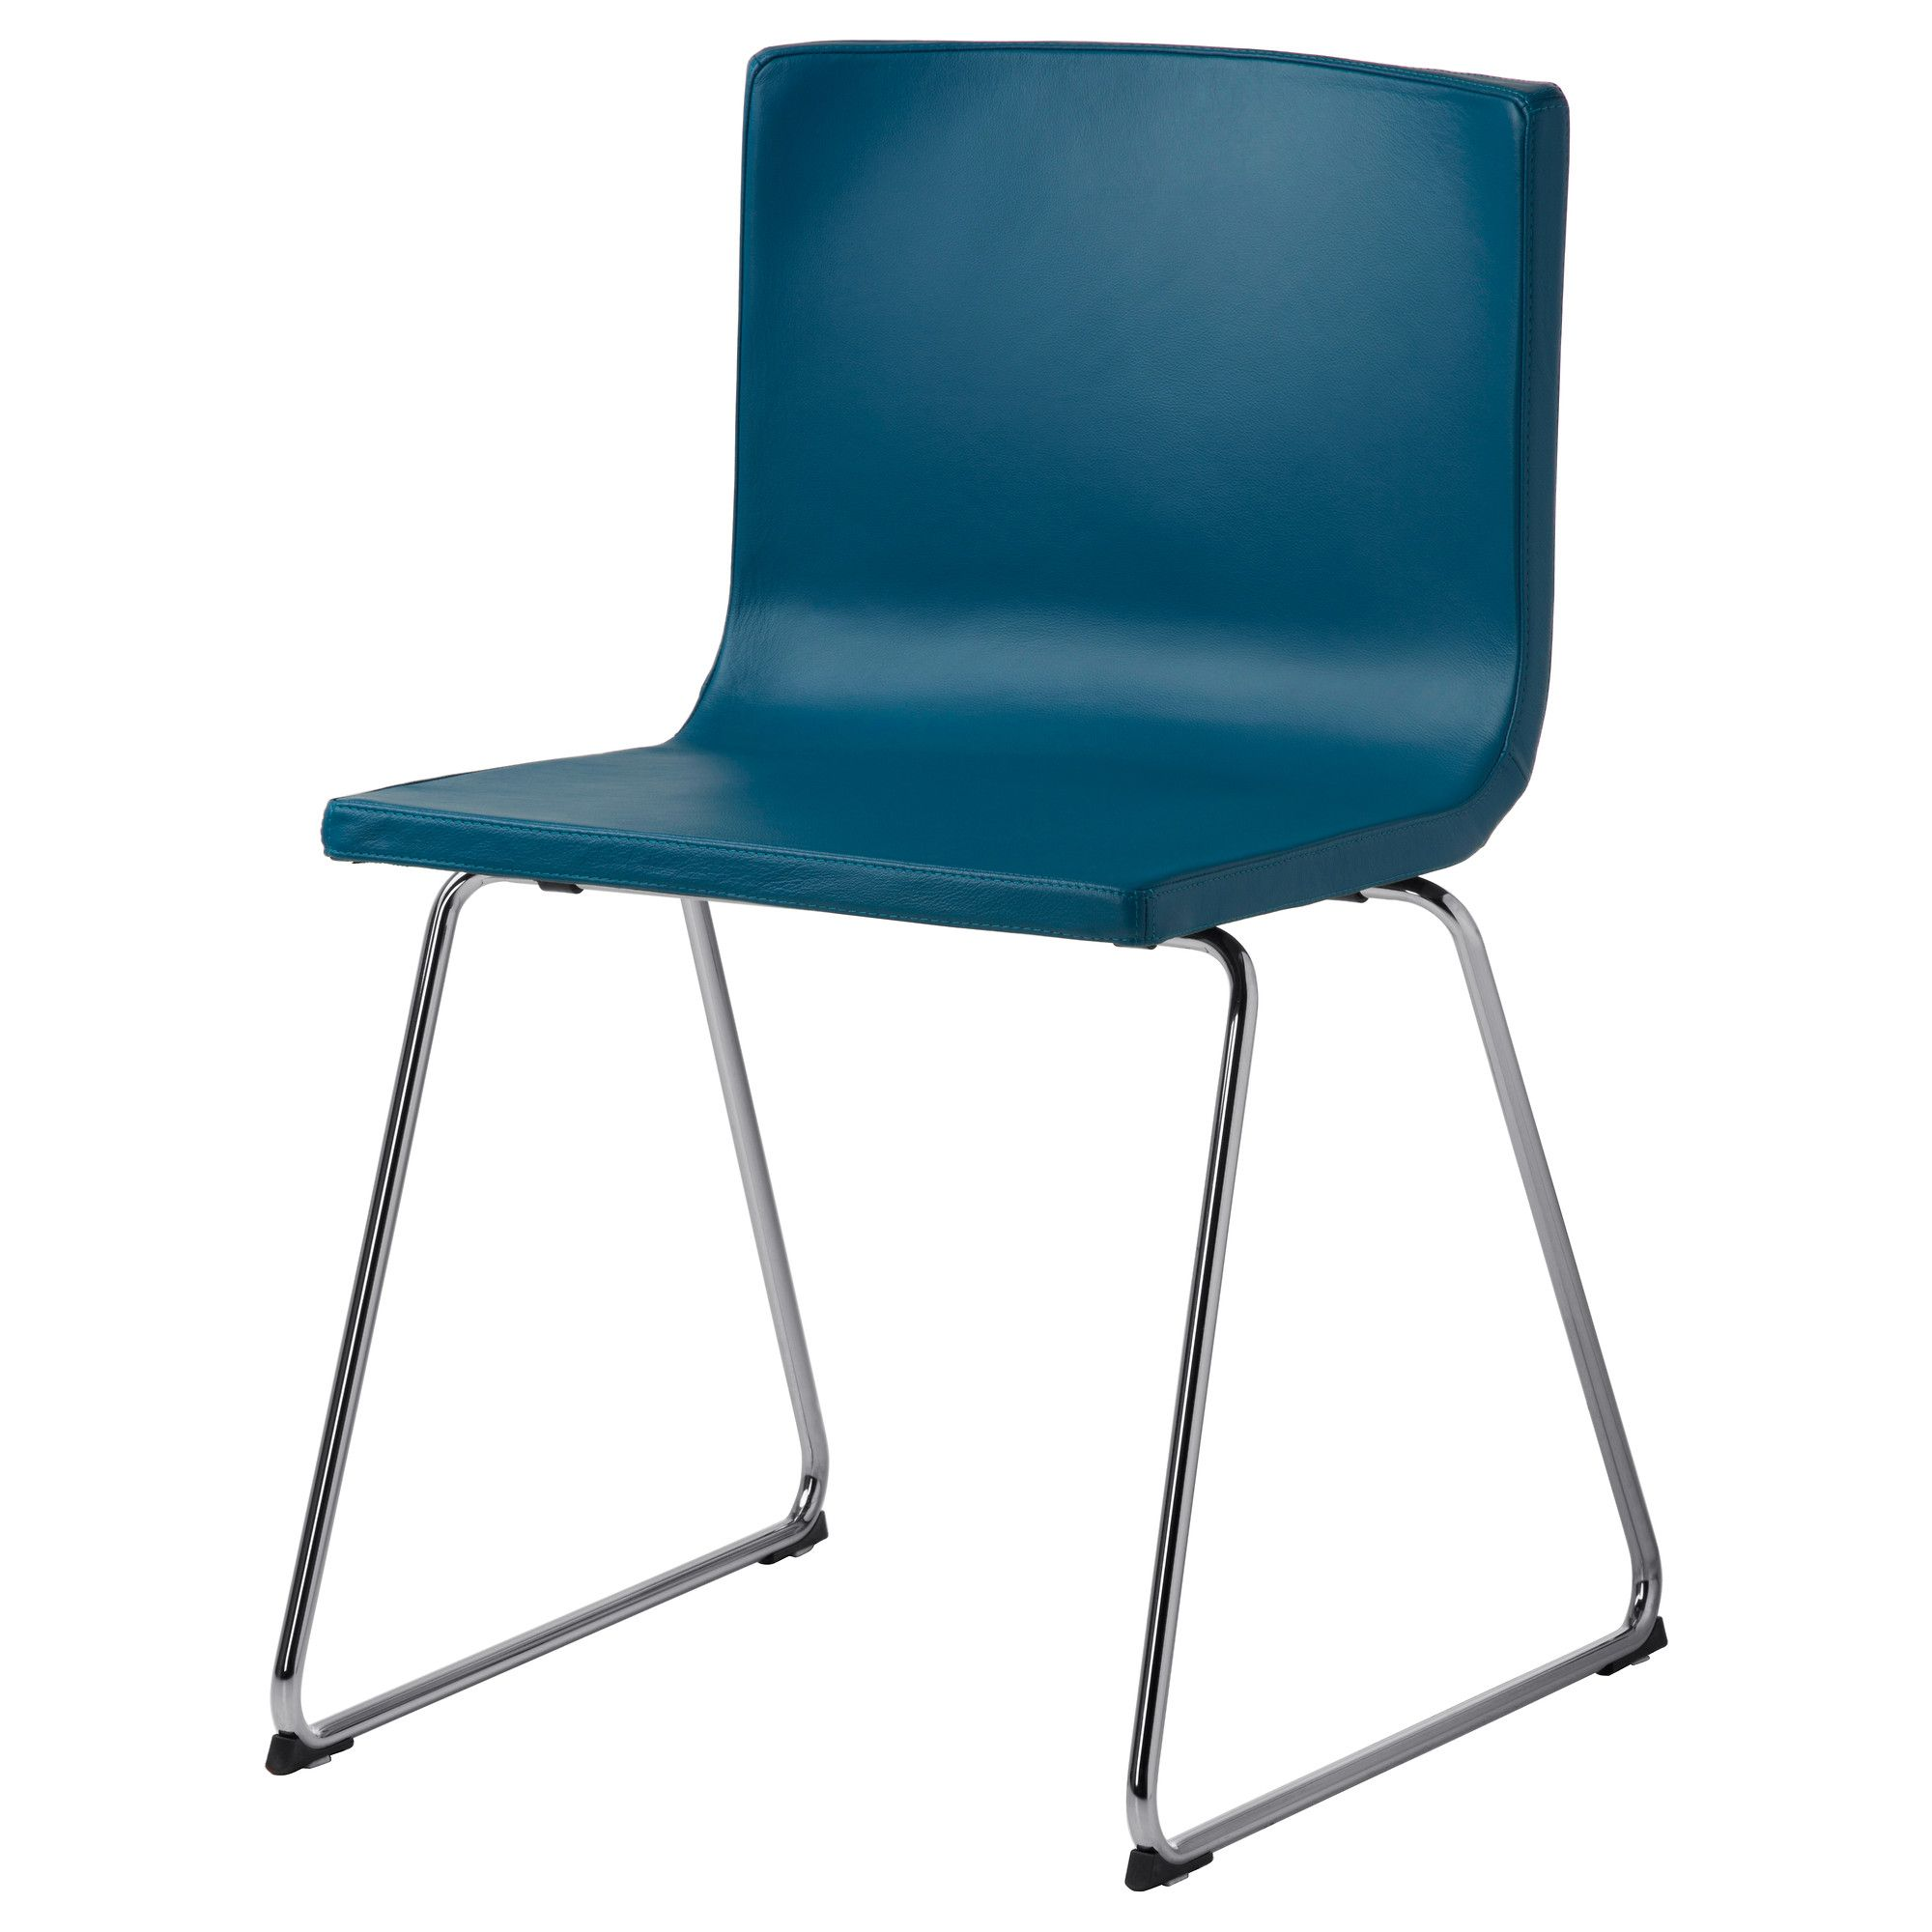 Break room BERNHARD Chair - chrome plated/Kavat blue - IKEA | Dr ...